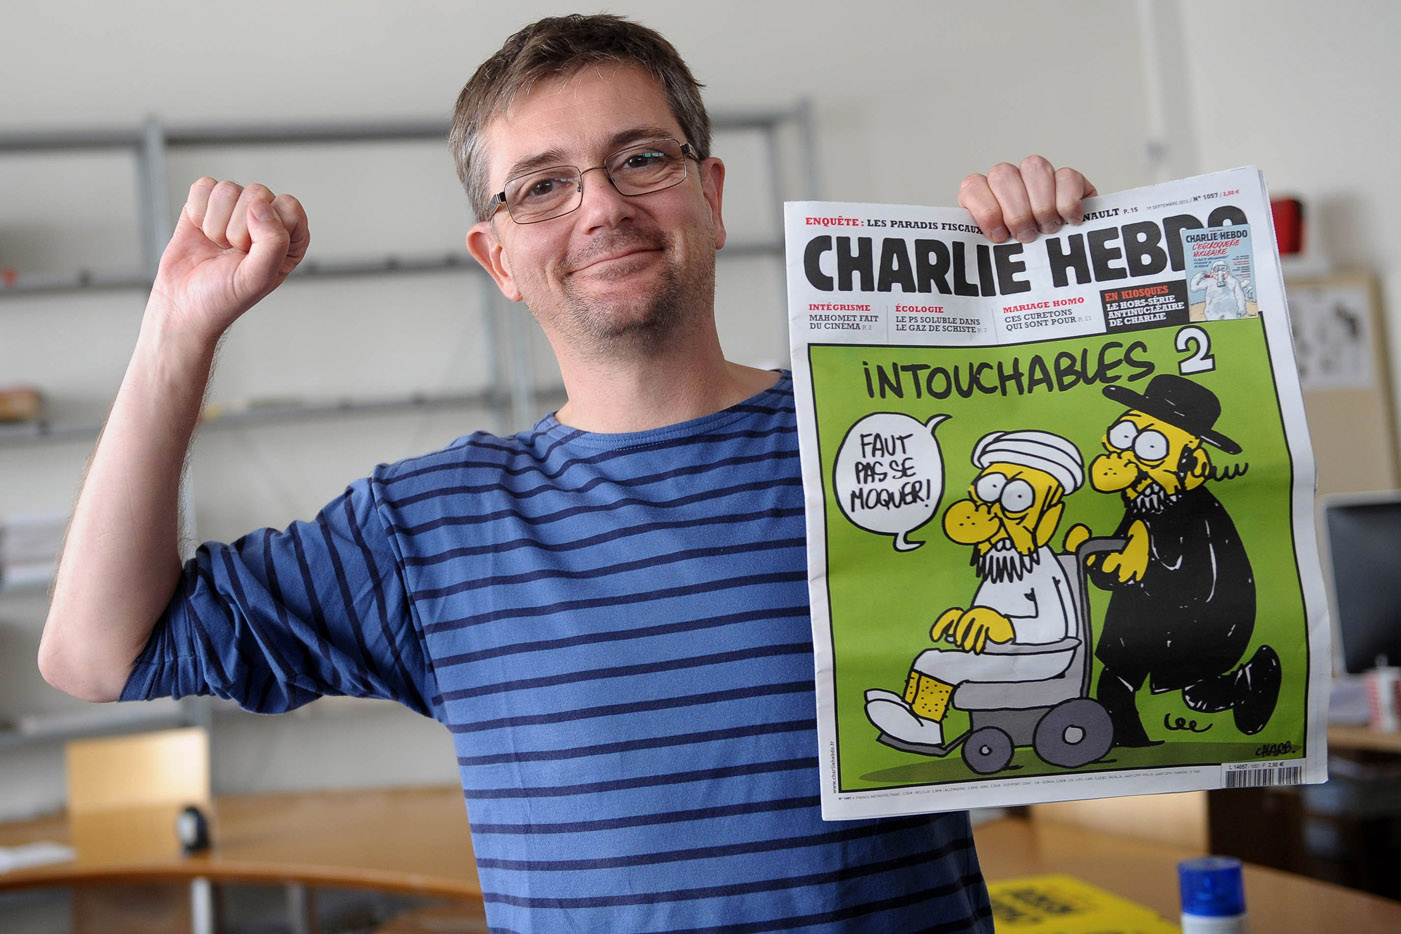 Sept. 19, 2012 - Paris, France - STEPHANE CHARBONNIER, editor of French satirical magazine Charlie Hebdo. Security at French embassies around the world has been reinforced after the Paris-based satirical magazine Charlie Hebdo published cartoons mocking the prophet Muhammad. (Credit Image: © Pascal Potier/Visual/ZUMAPRESS.com)